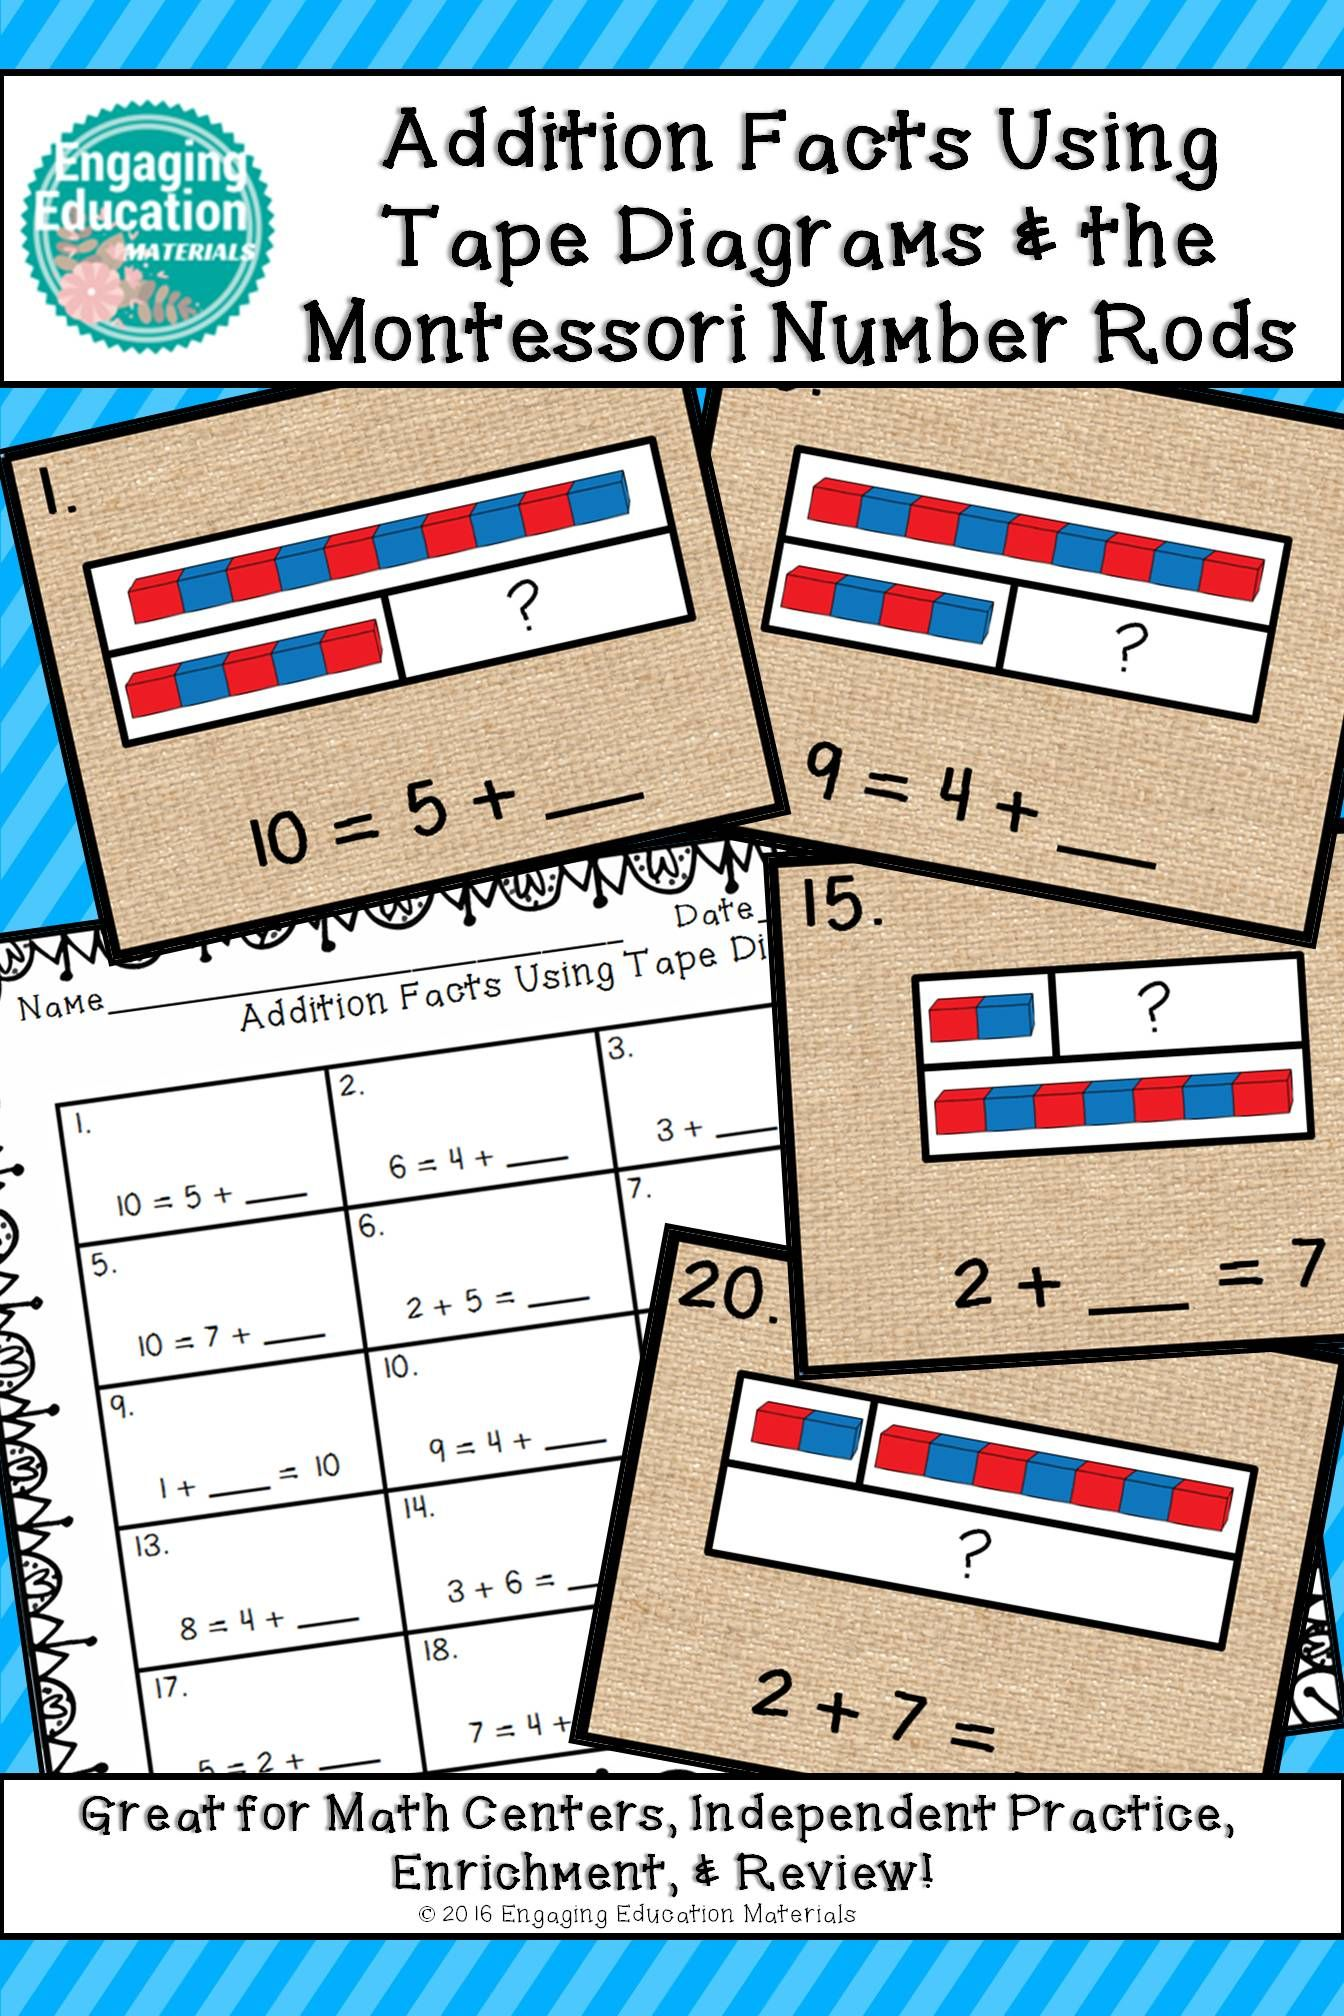 Addition Facts Using Tape Diagrams And The Montessori